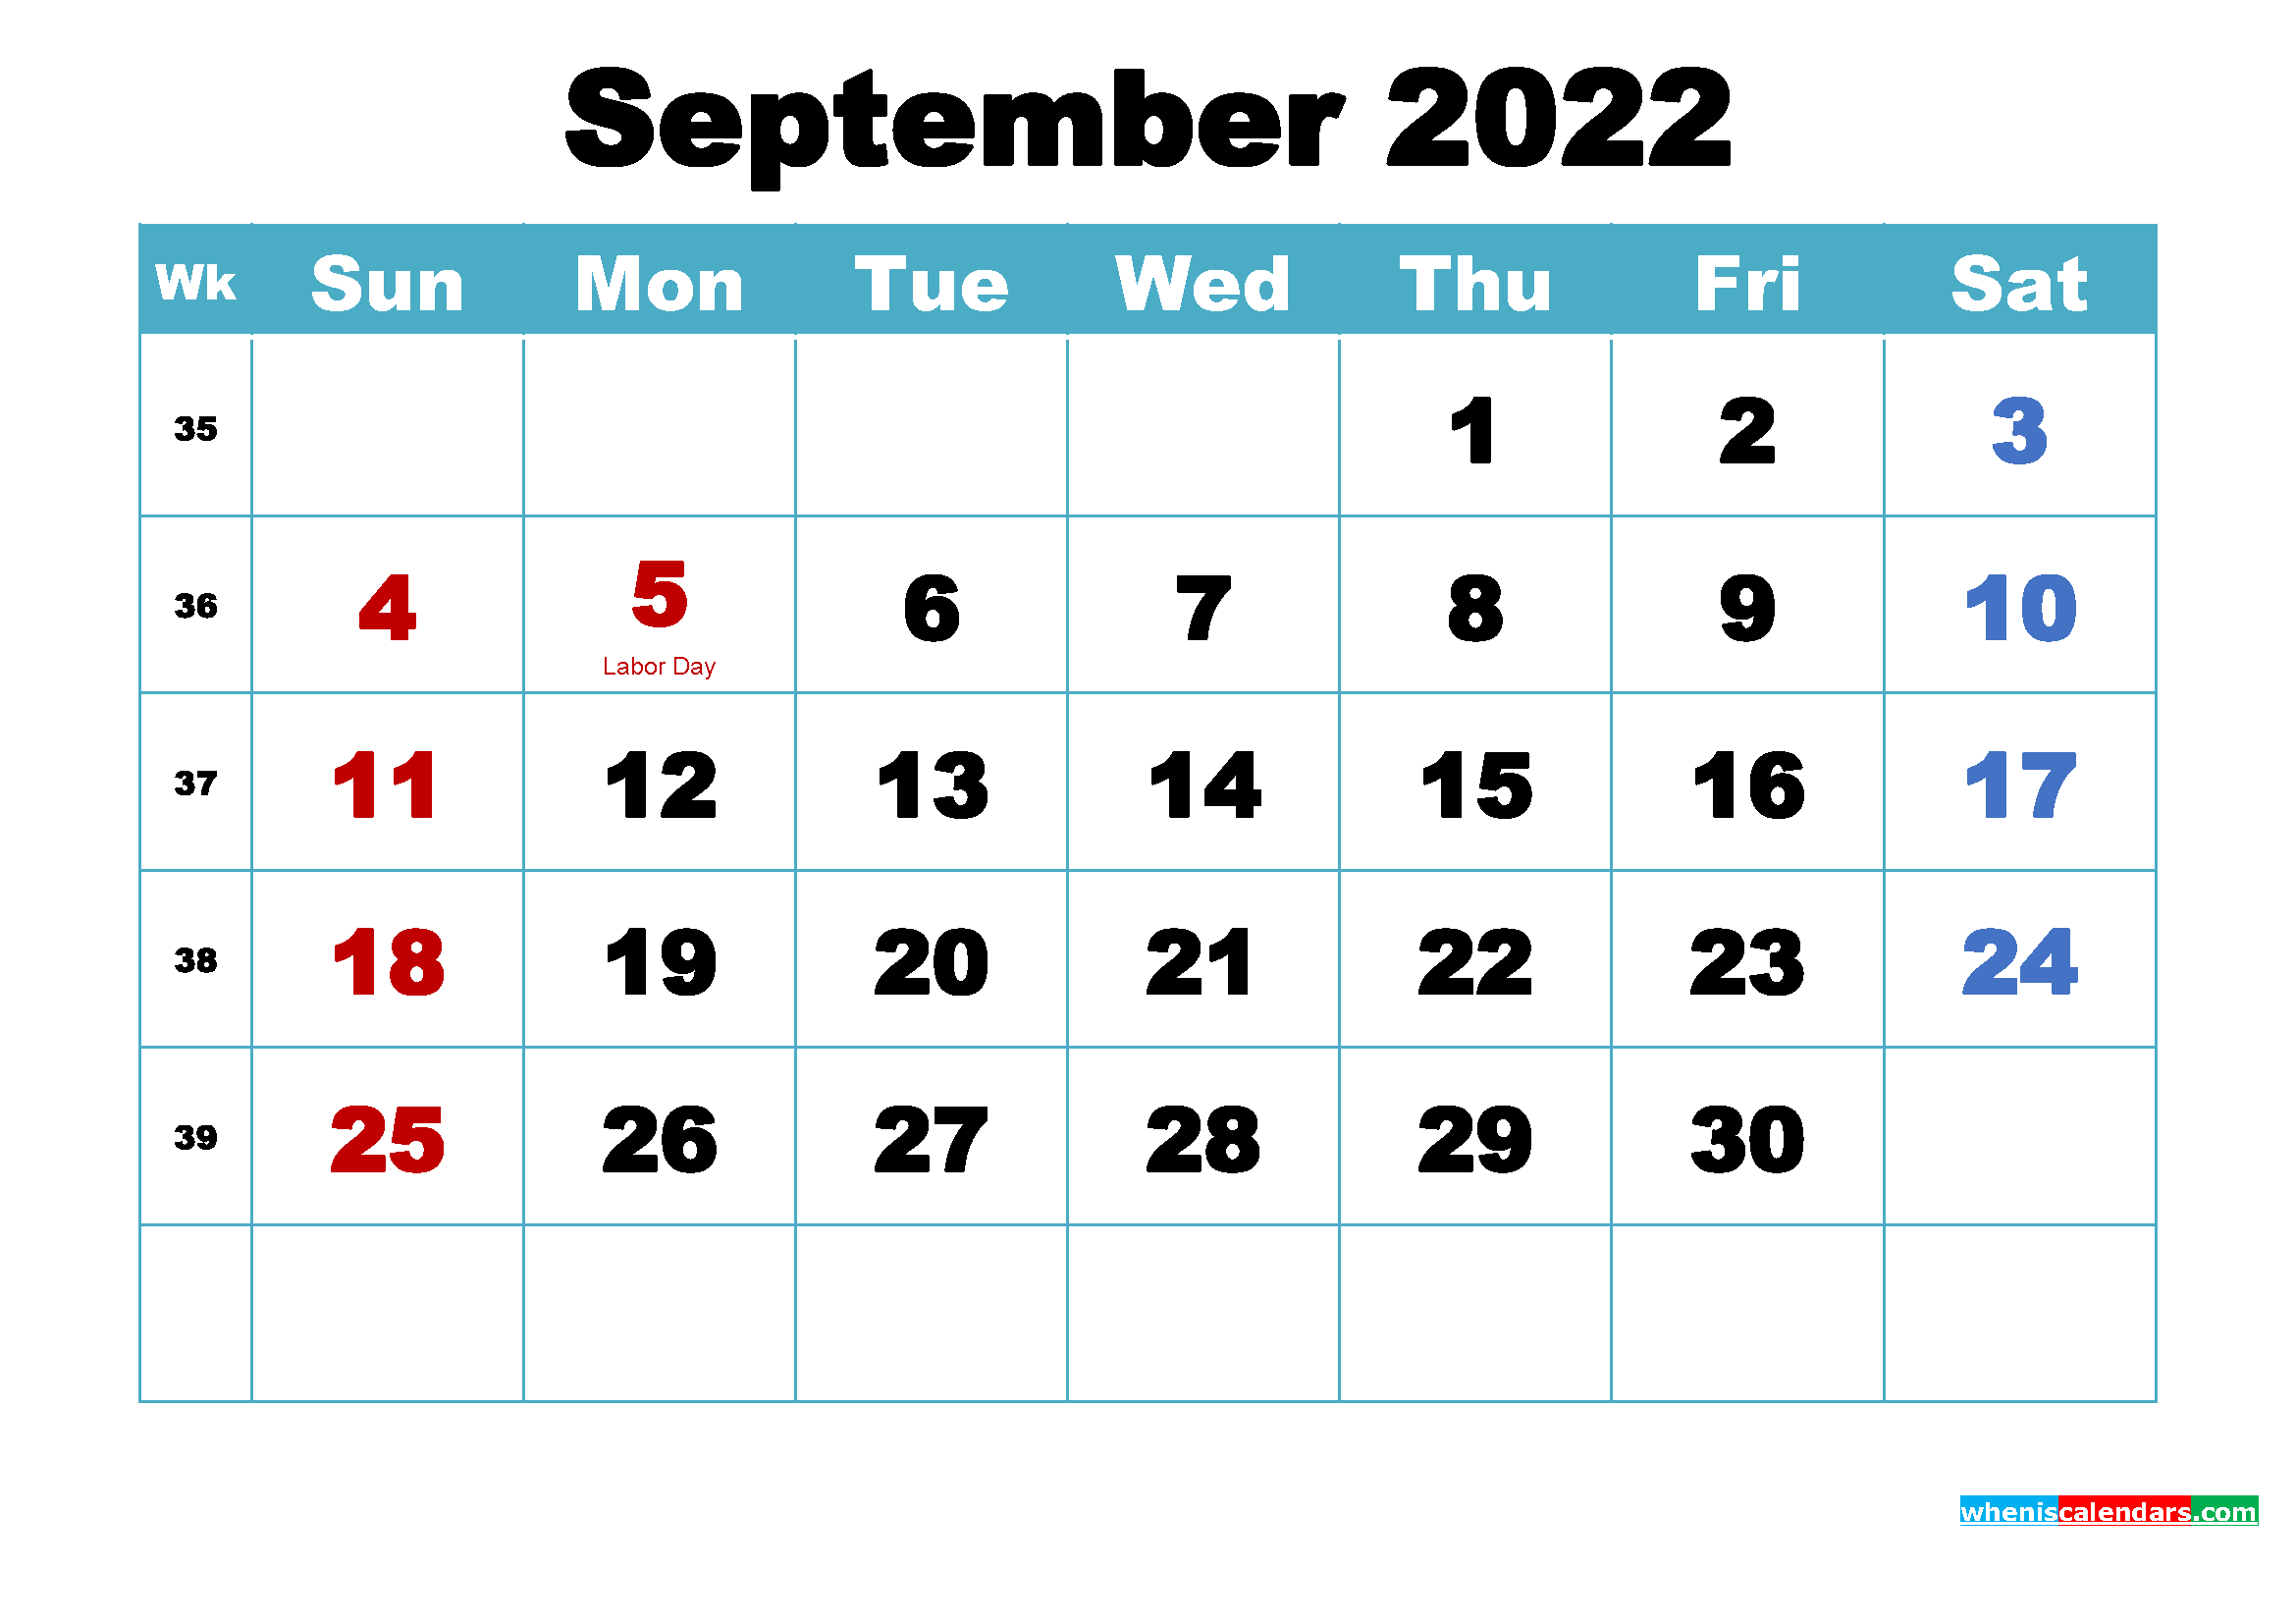 Printable September 2022 Calendar by Month